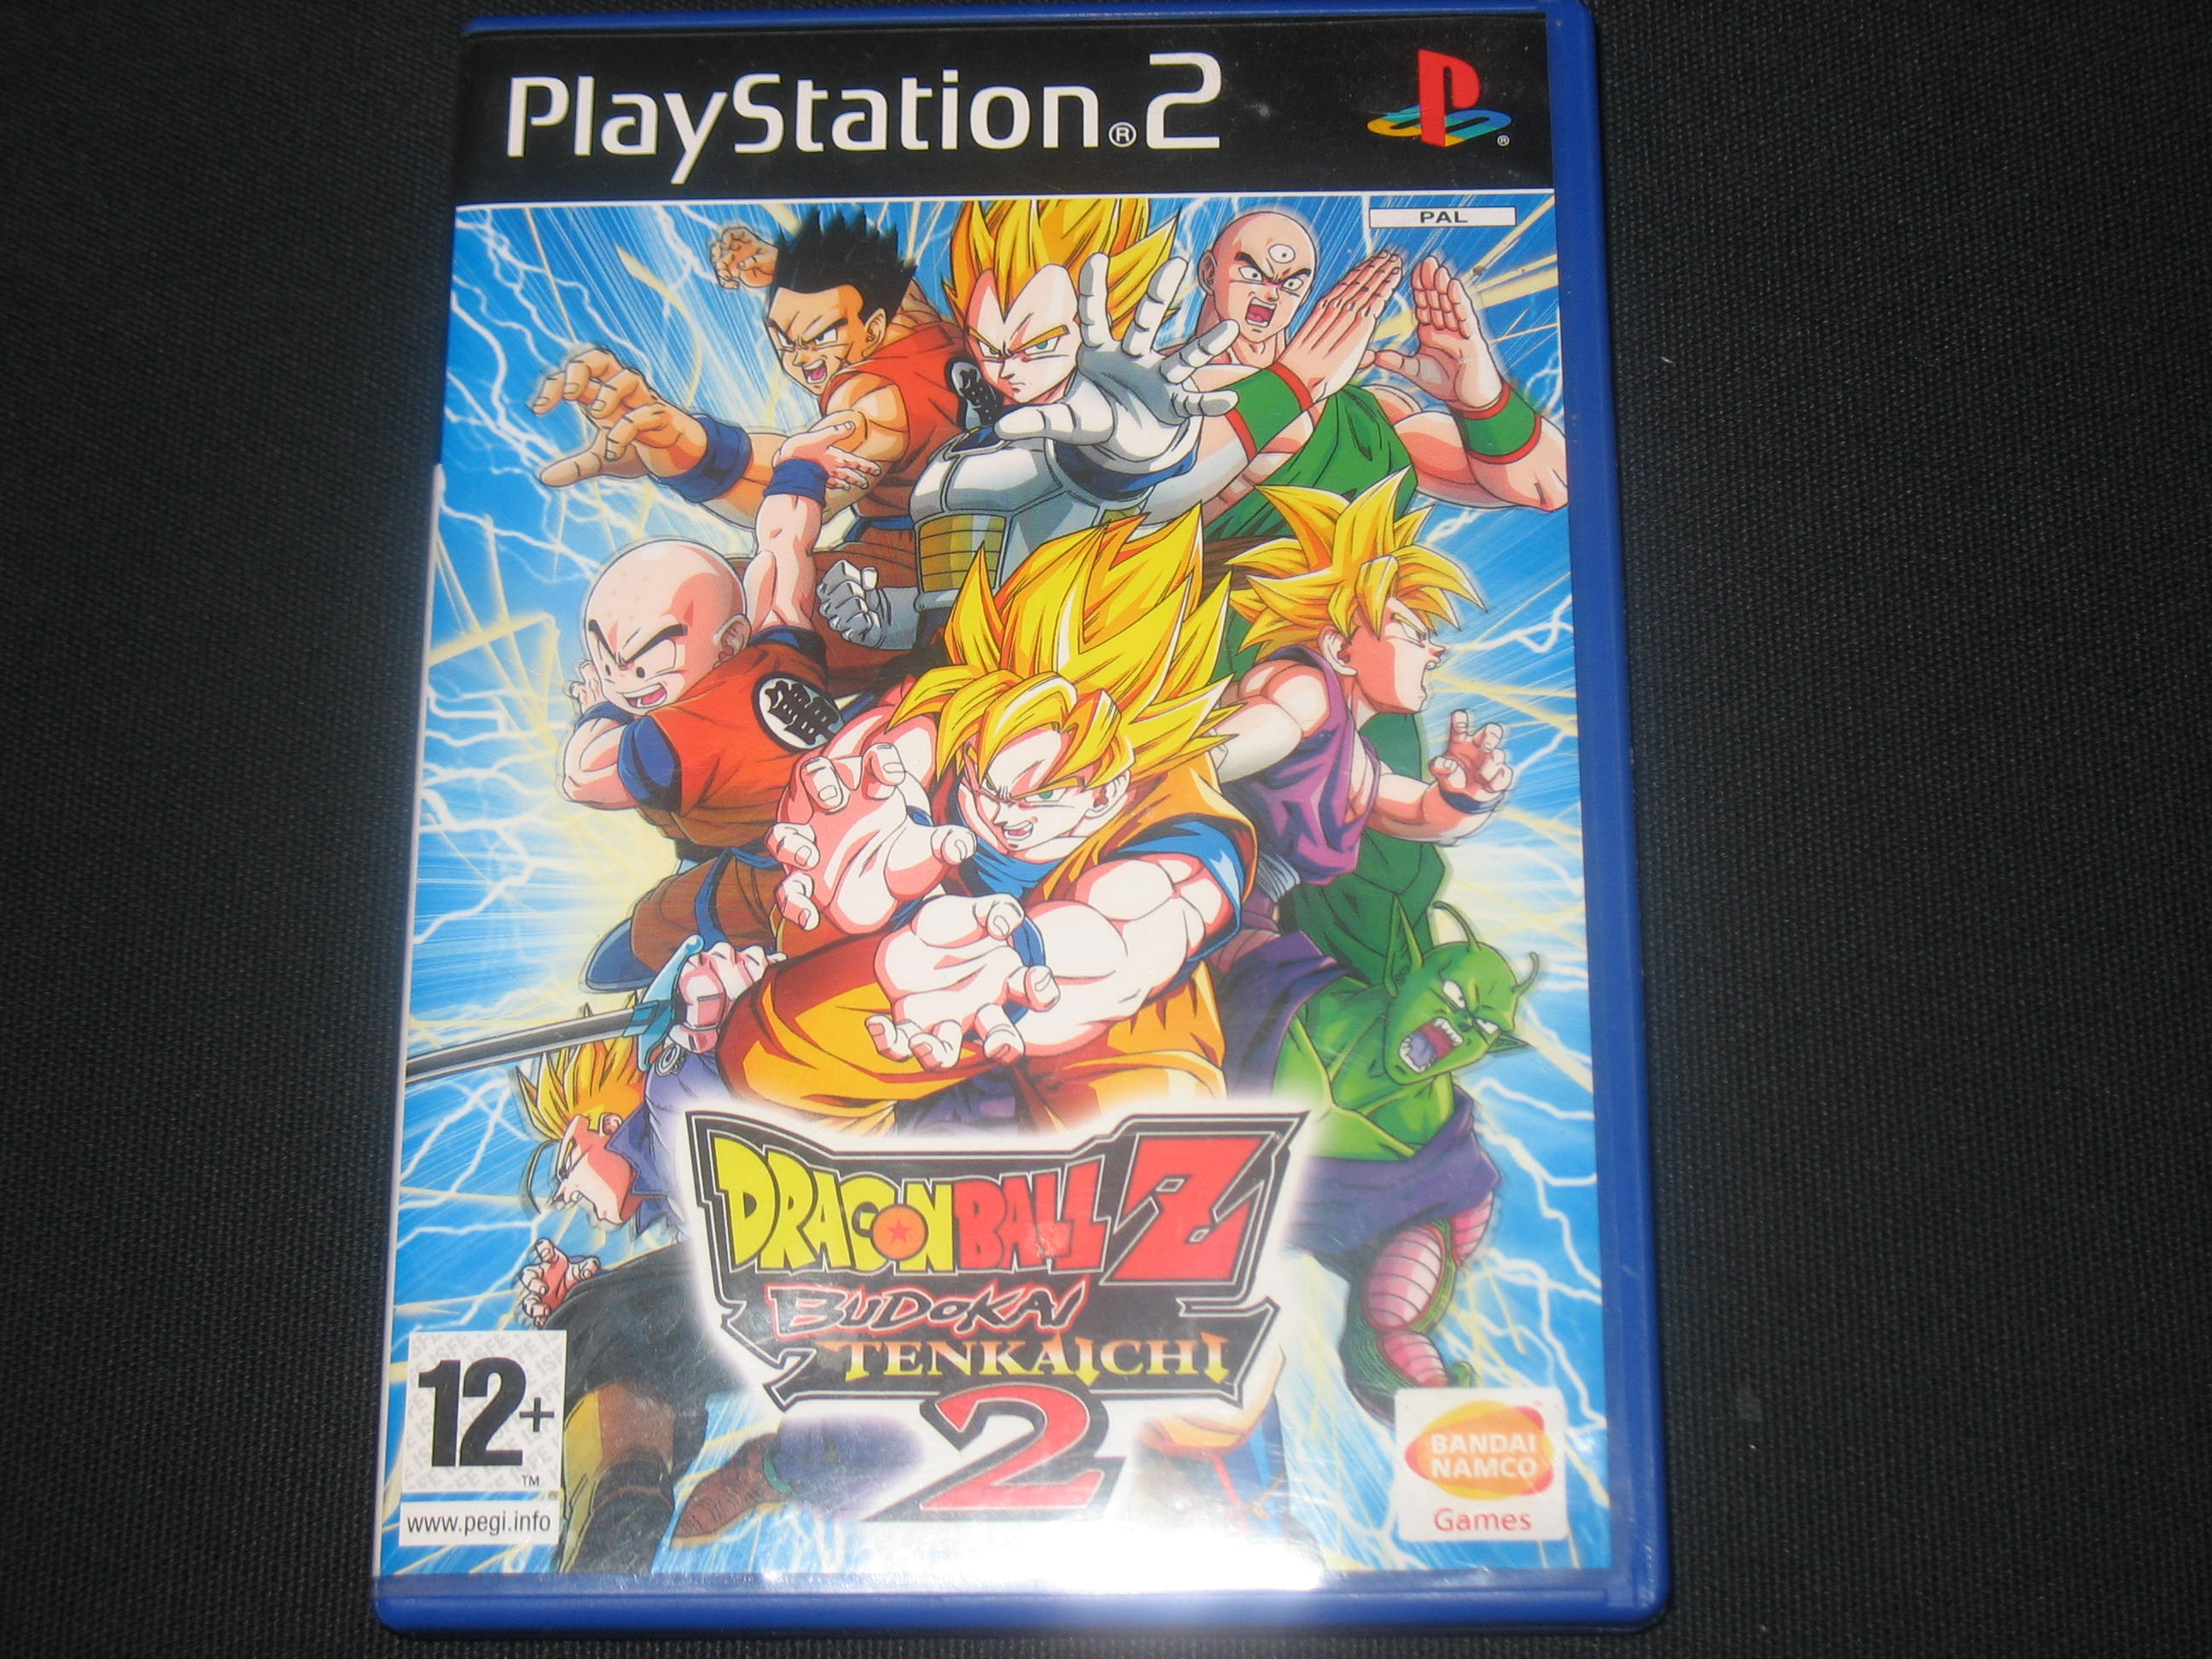 Jeux archive at dragon ball z - Jeux info dragon ball z ...